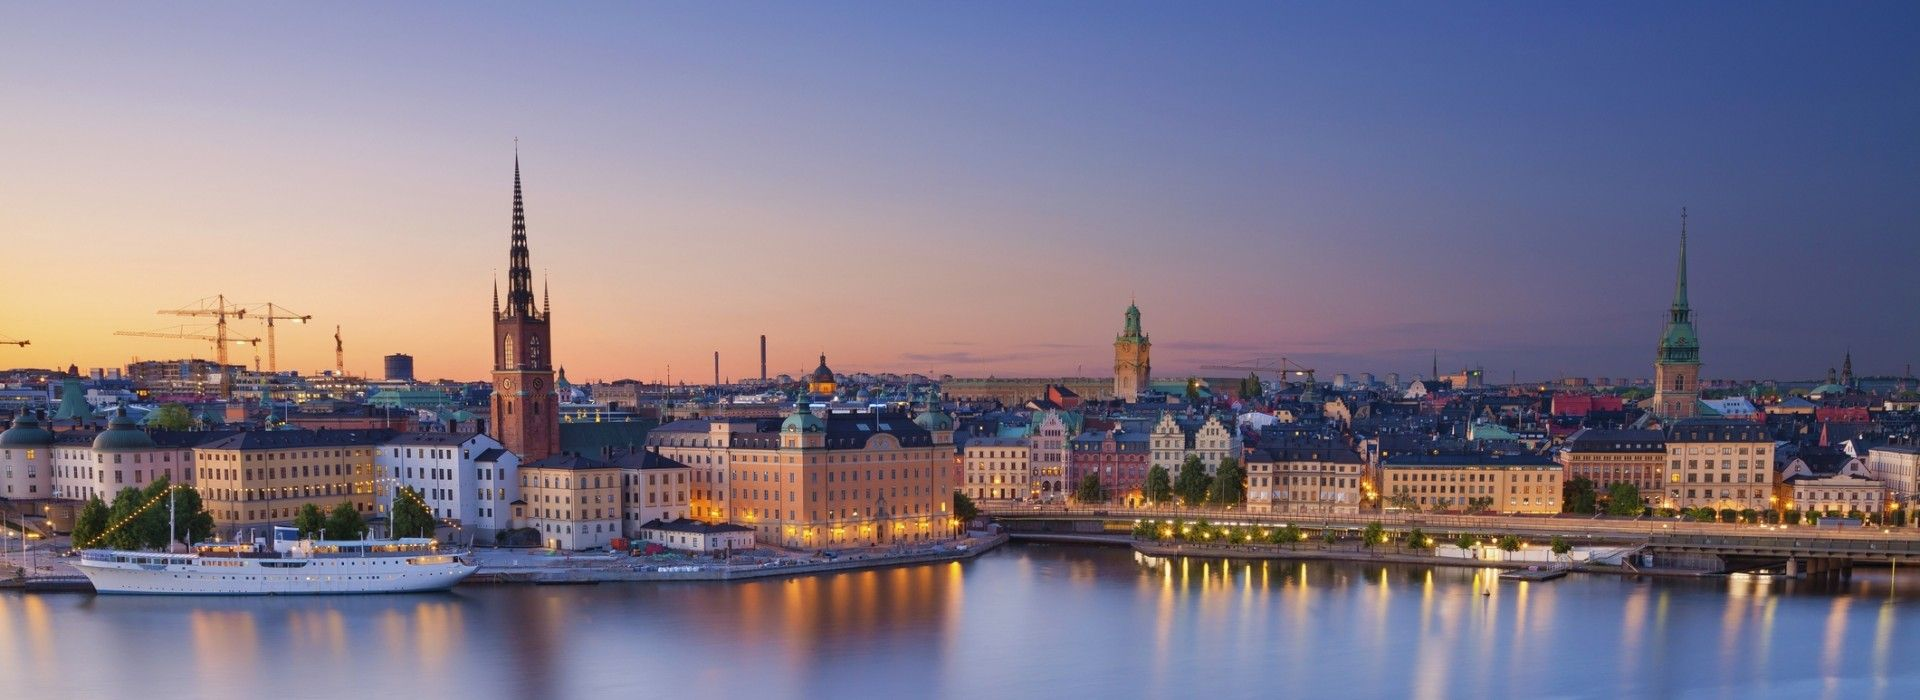 Sightseeing, attractions, culture and history Tours in Stockholm